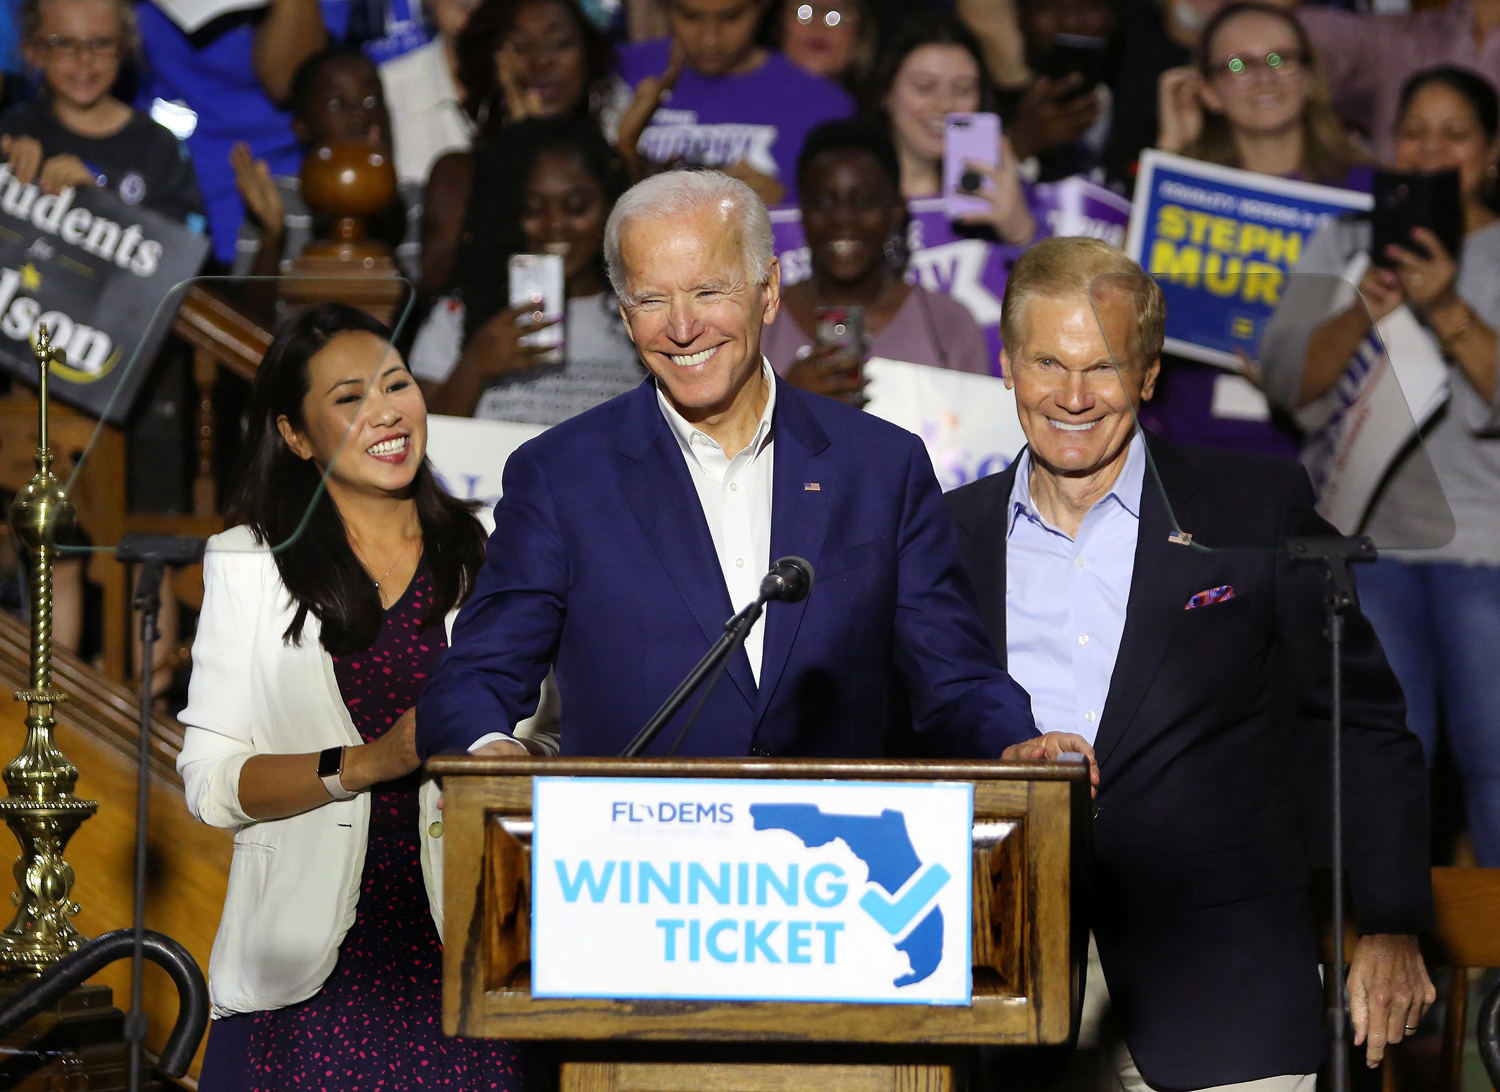 From left, Rep. Stephanie Murphy, former Vice President Joe Biden and Sen. Bill Nelson respond to cheering supporters as Biden headlined a rally for Democrats in downtown Orlando, on Tuesday, Oct. 23, 2018.